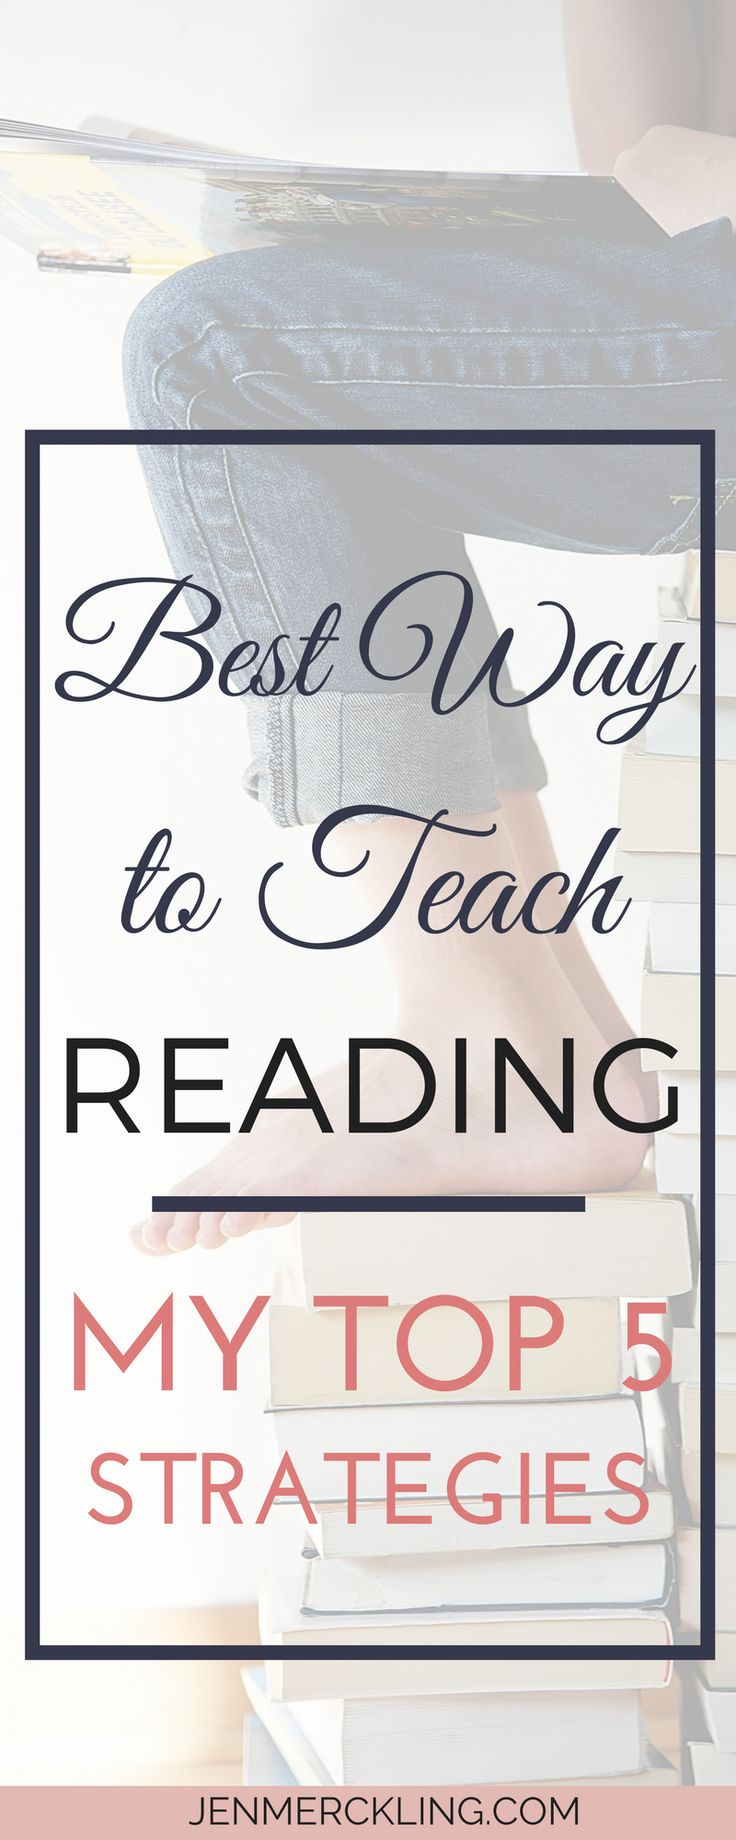 10643 best whats hot in homeschooling images on pinterest best way to teach reading my top 5 strategies fandeluxe